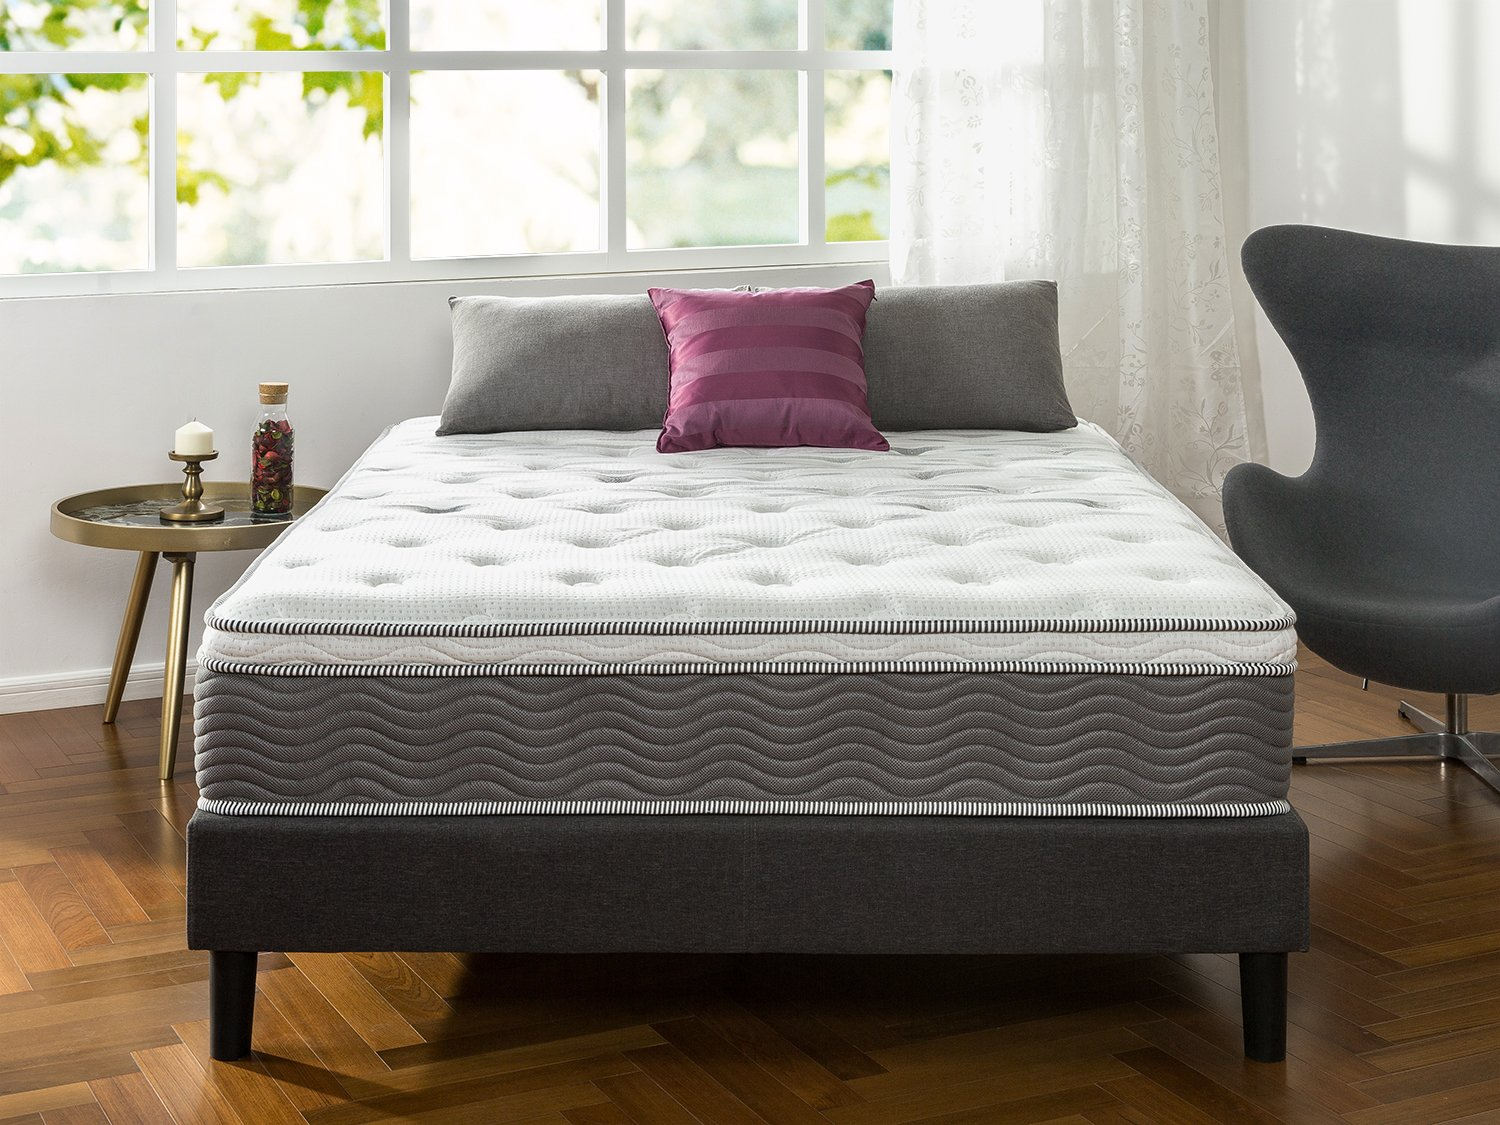 Zinus Performance Extra Spring Mattress